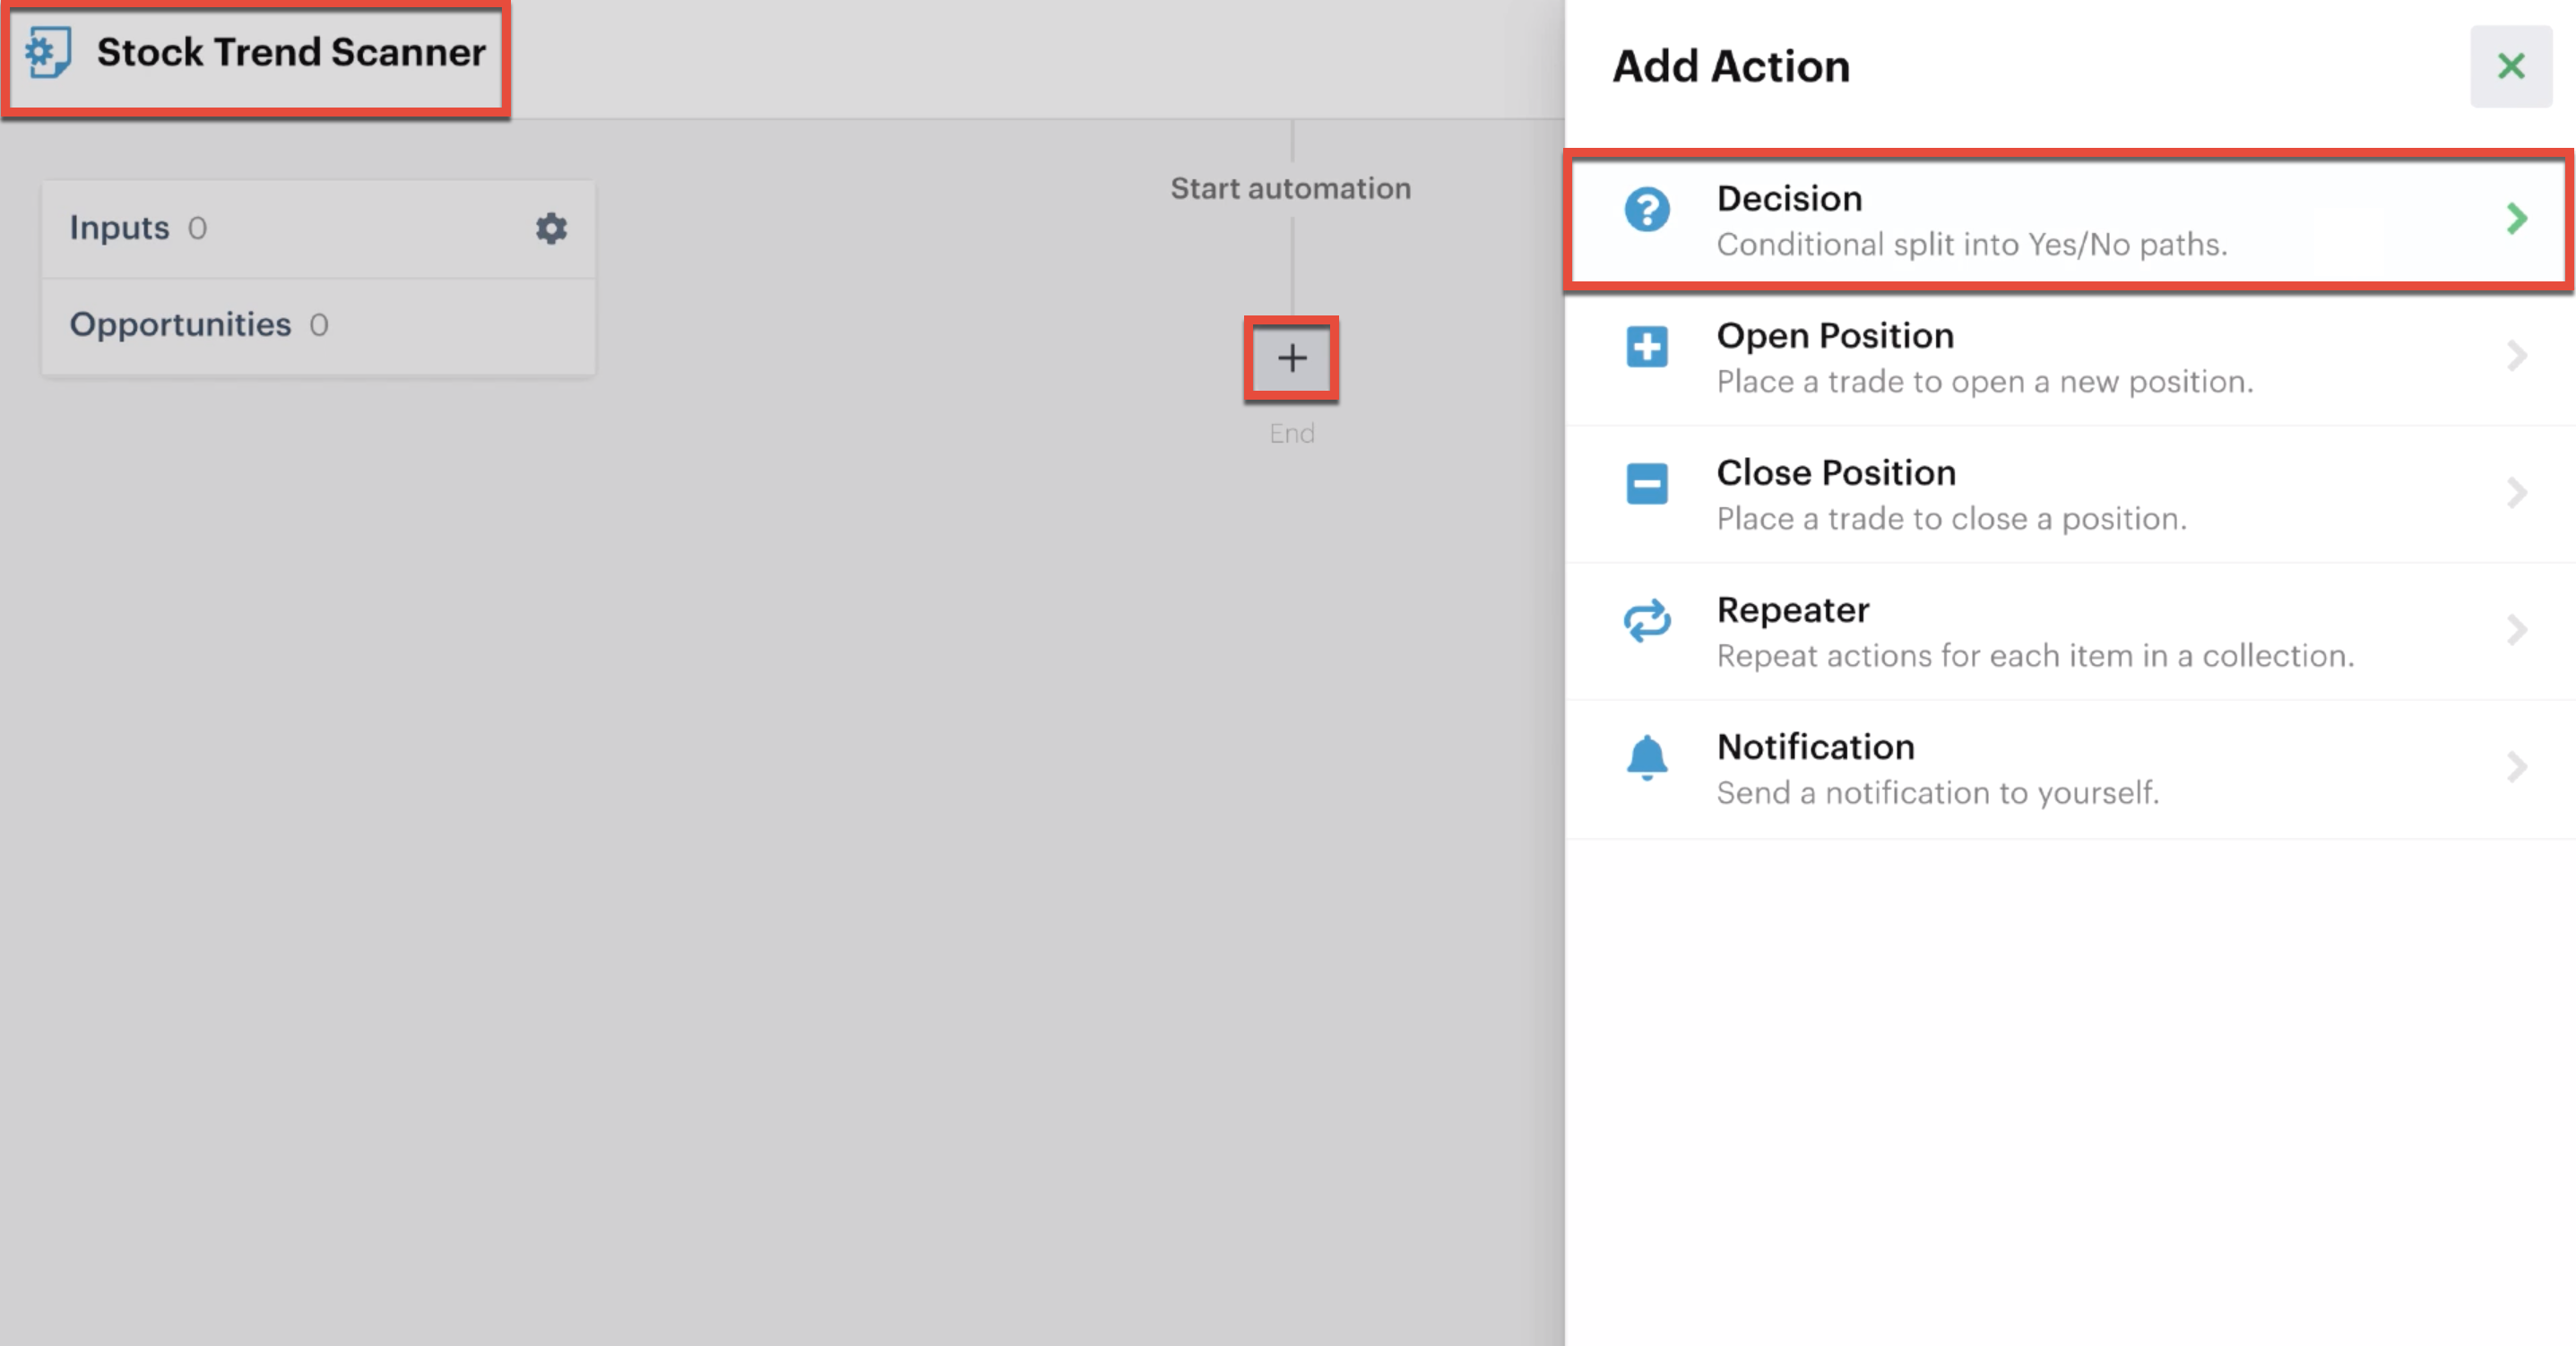 Adding a decision action to the automation editor